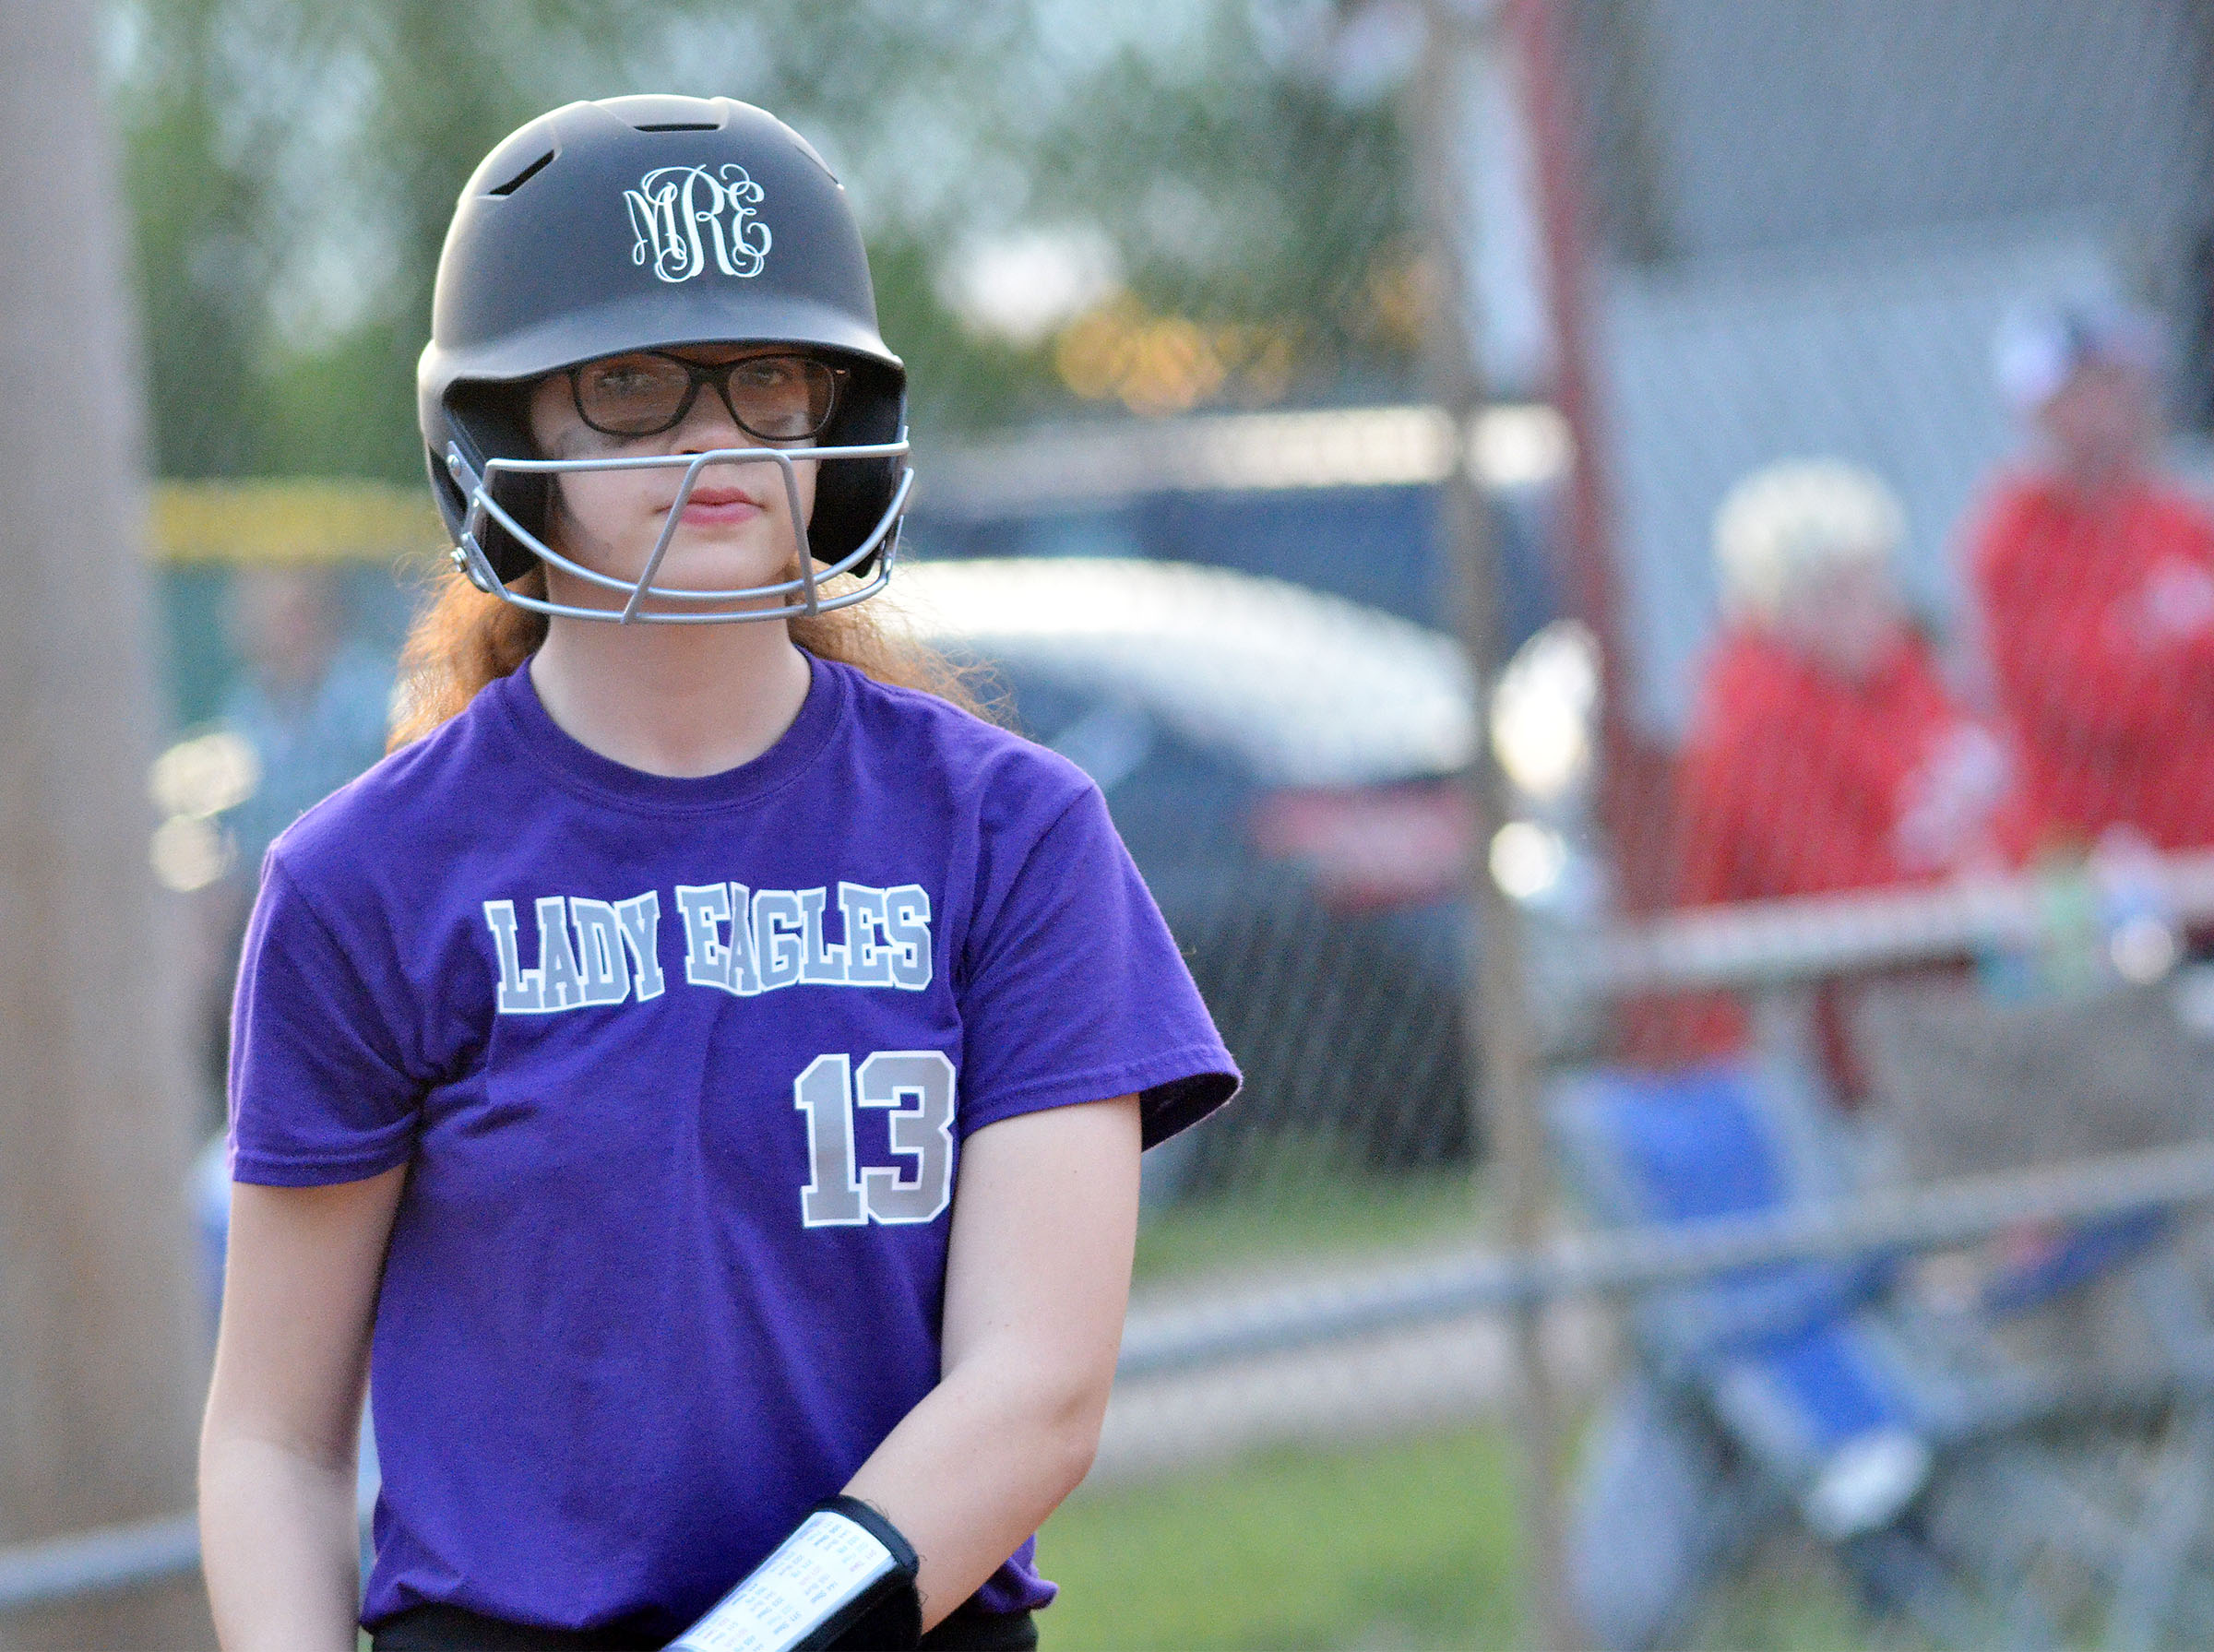 CMS sixth-grader Mary Russell waits to bat.